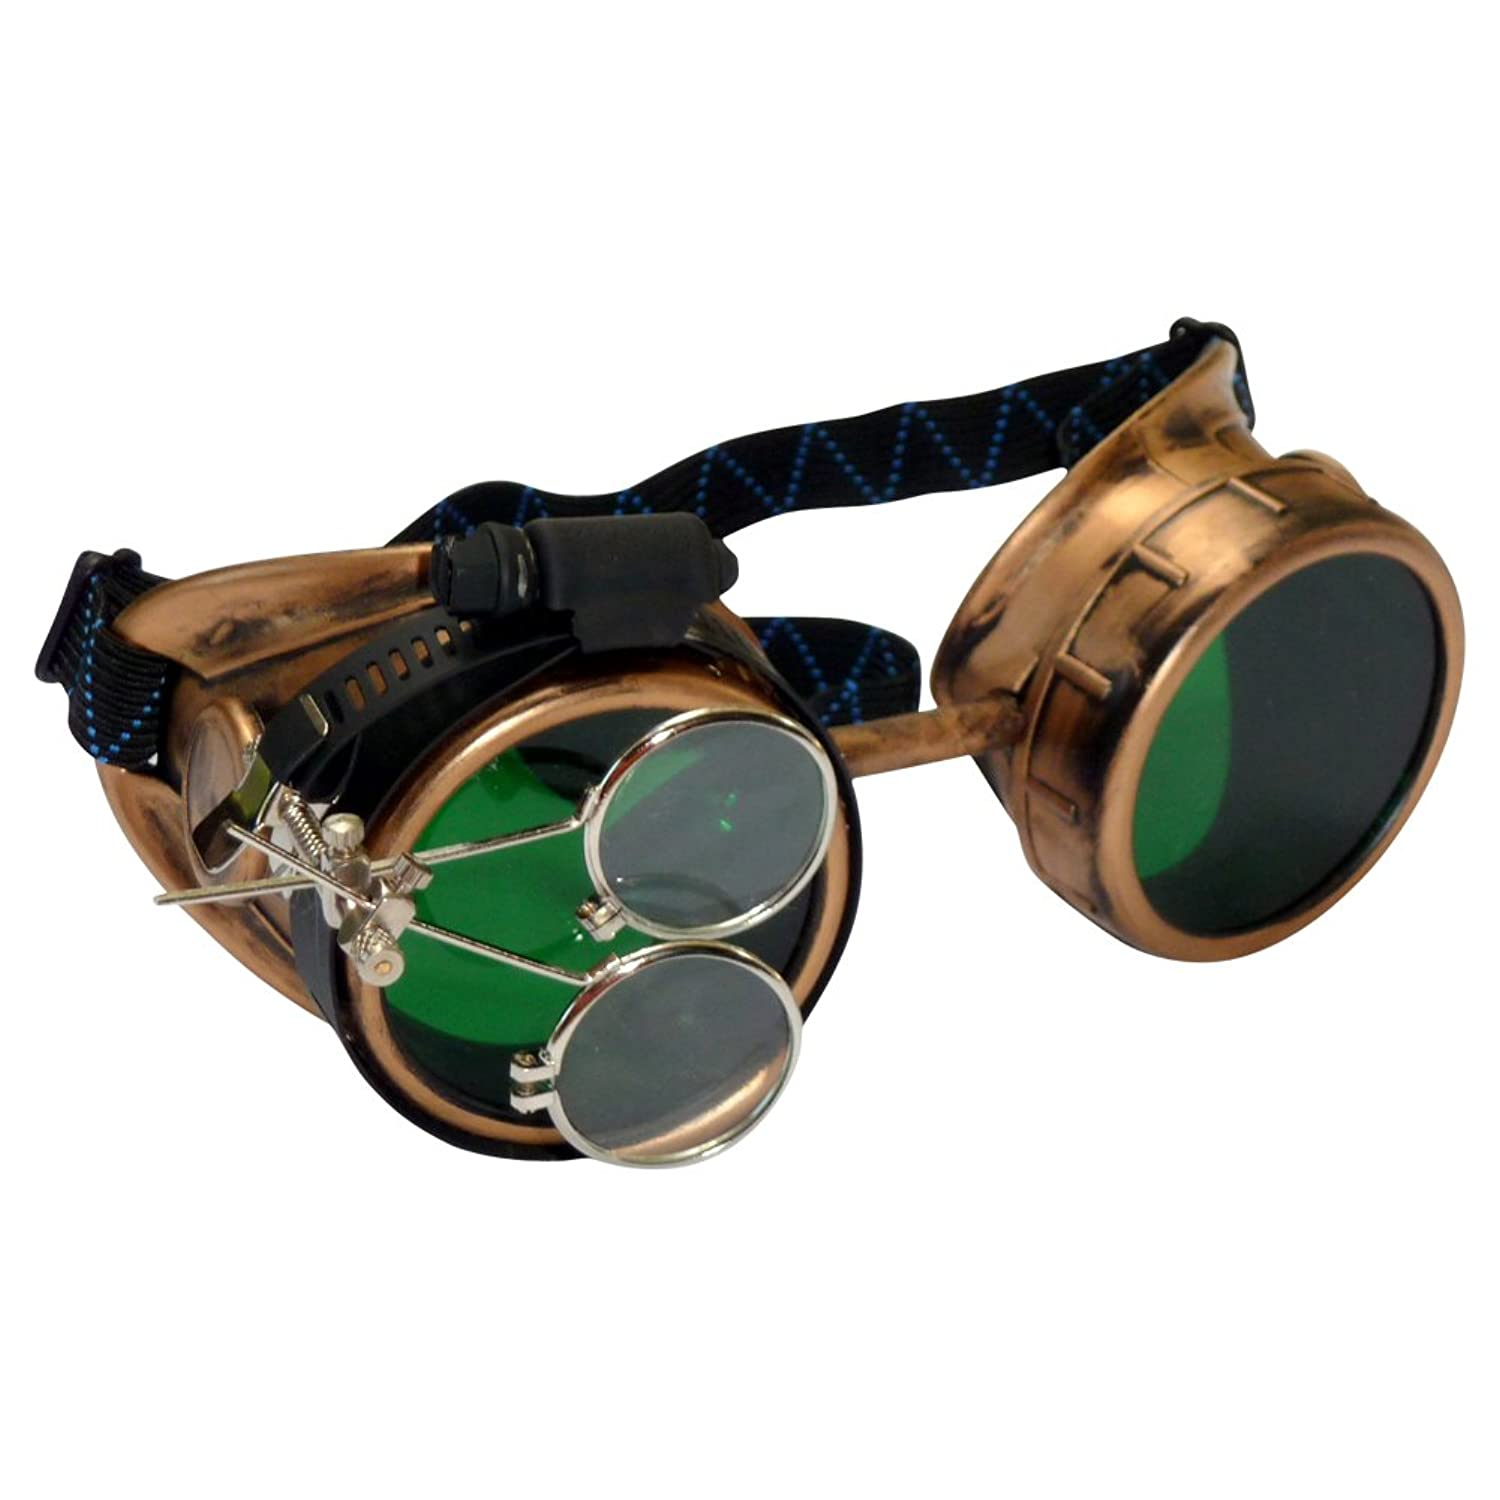 Steampunk Accessories | Goggles, Gears, Glasses, Guns, Mask Steampunk Victorian Goggles Glasses gold green magnifying lens $24.99 AT vintagedancer.com